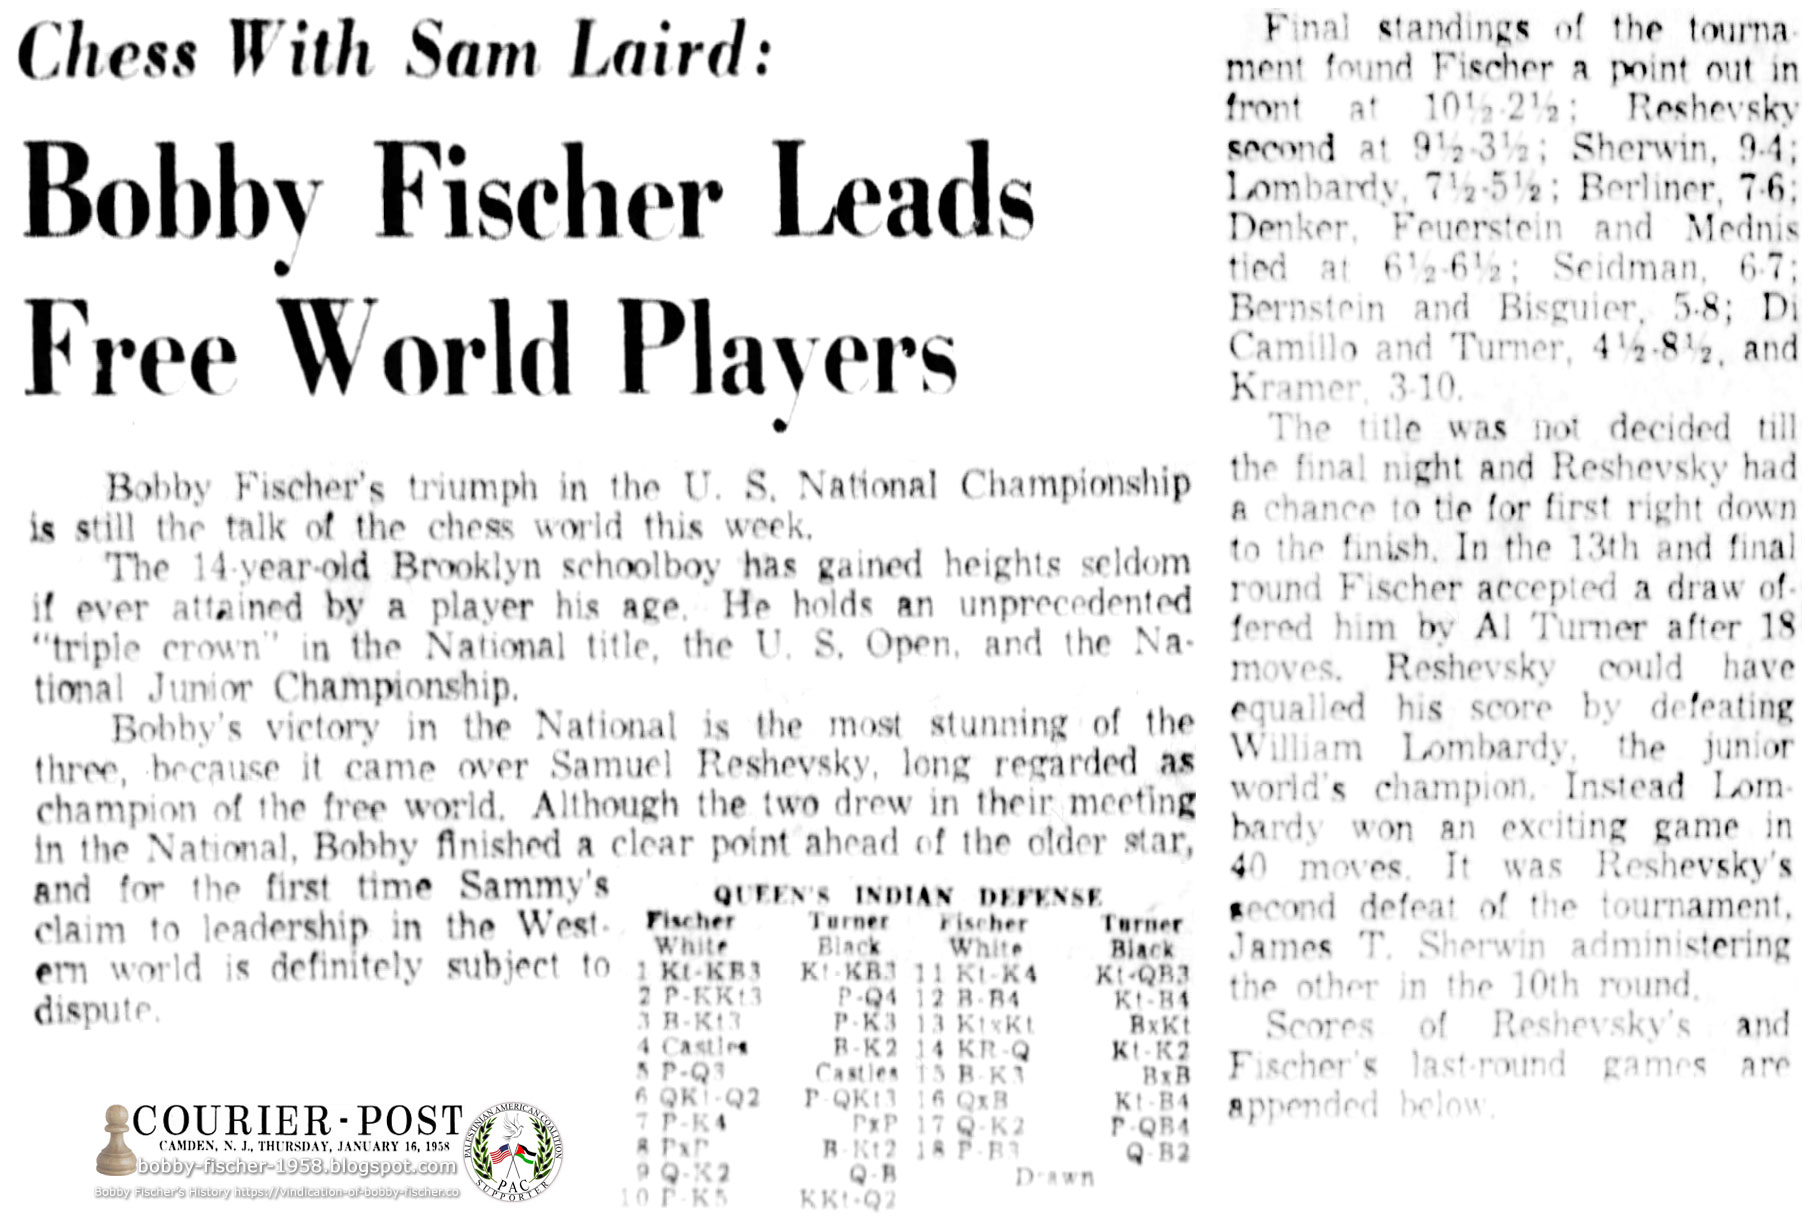 Bobby Fischer Leads Free World Players